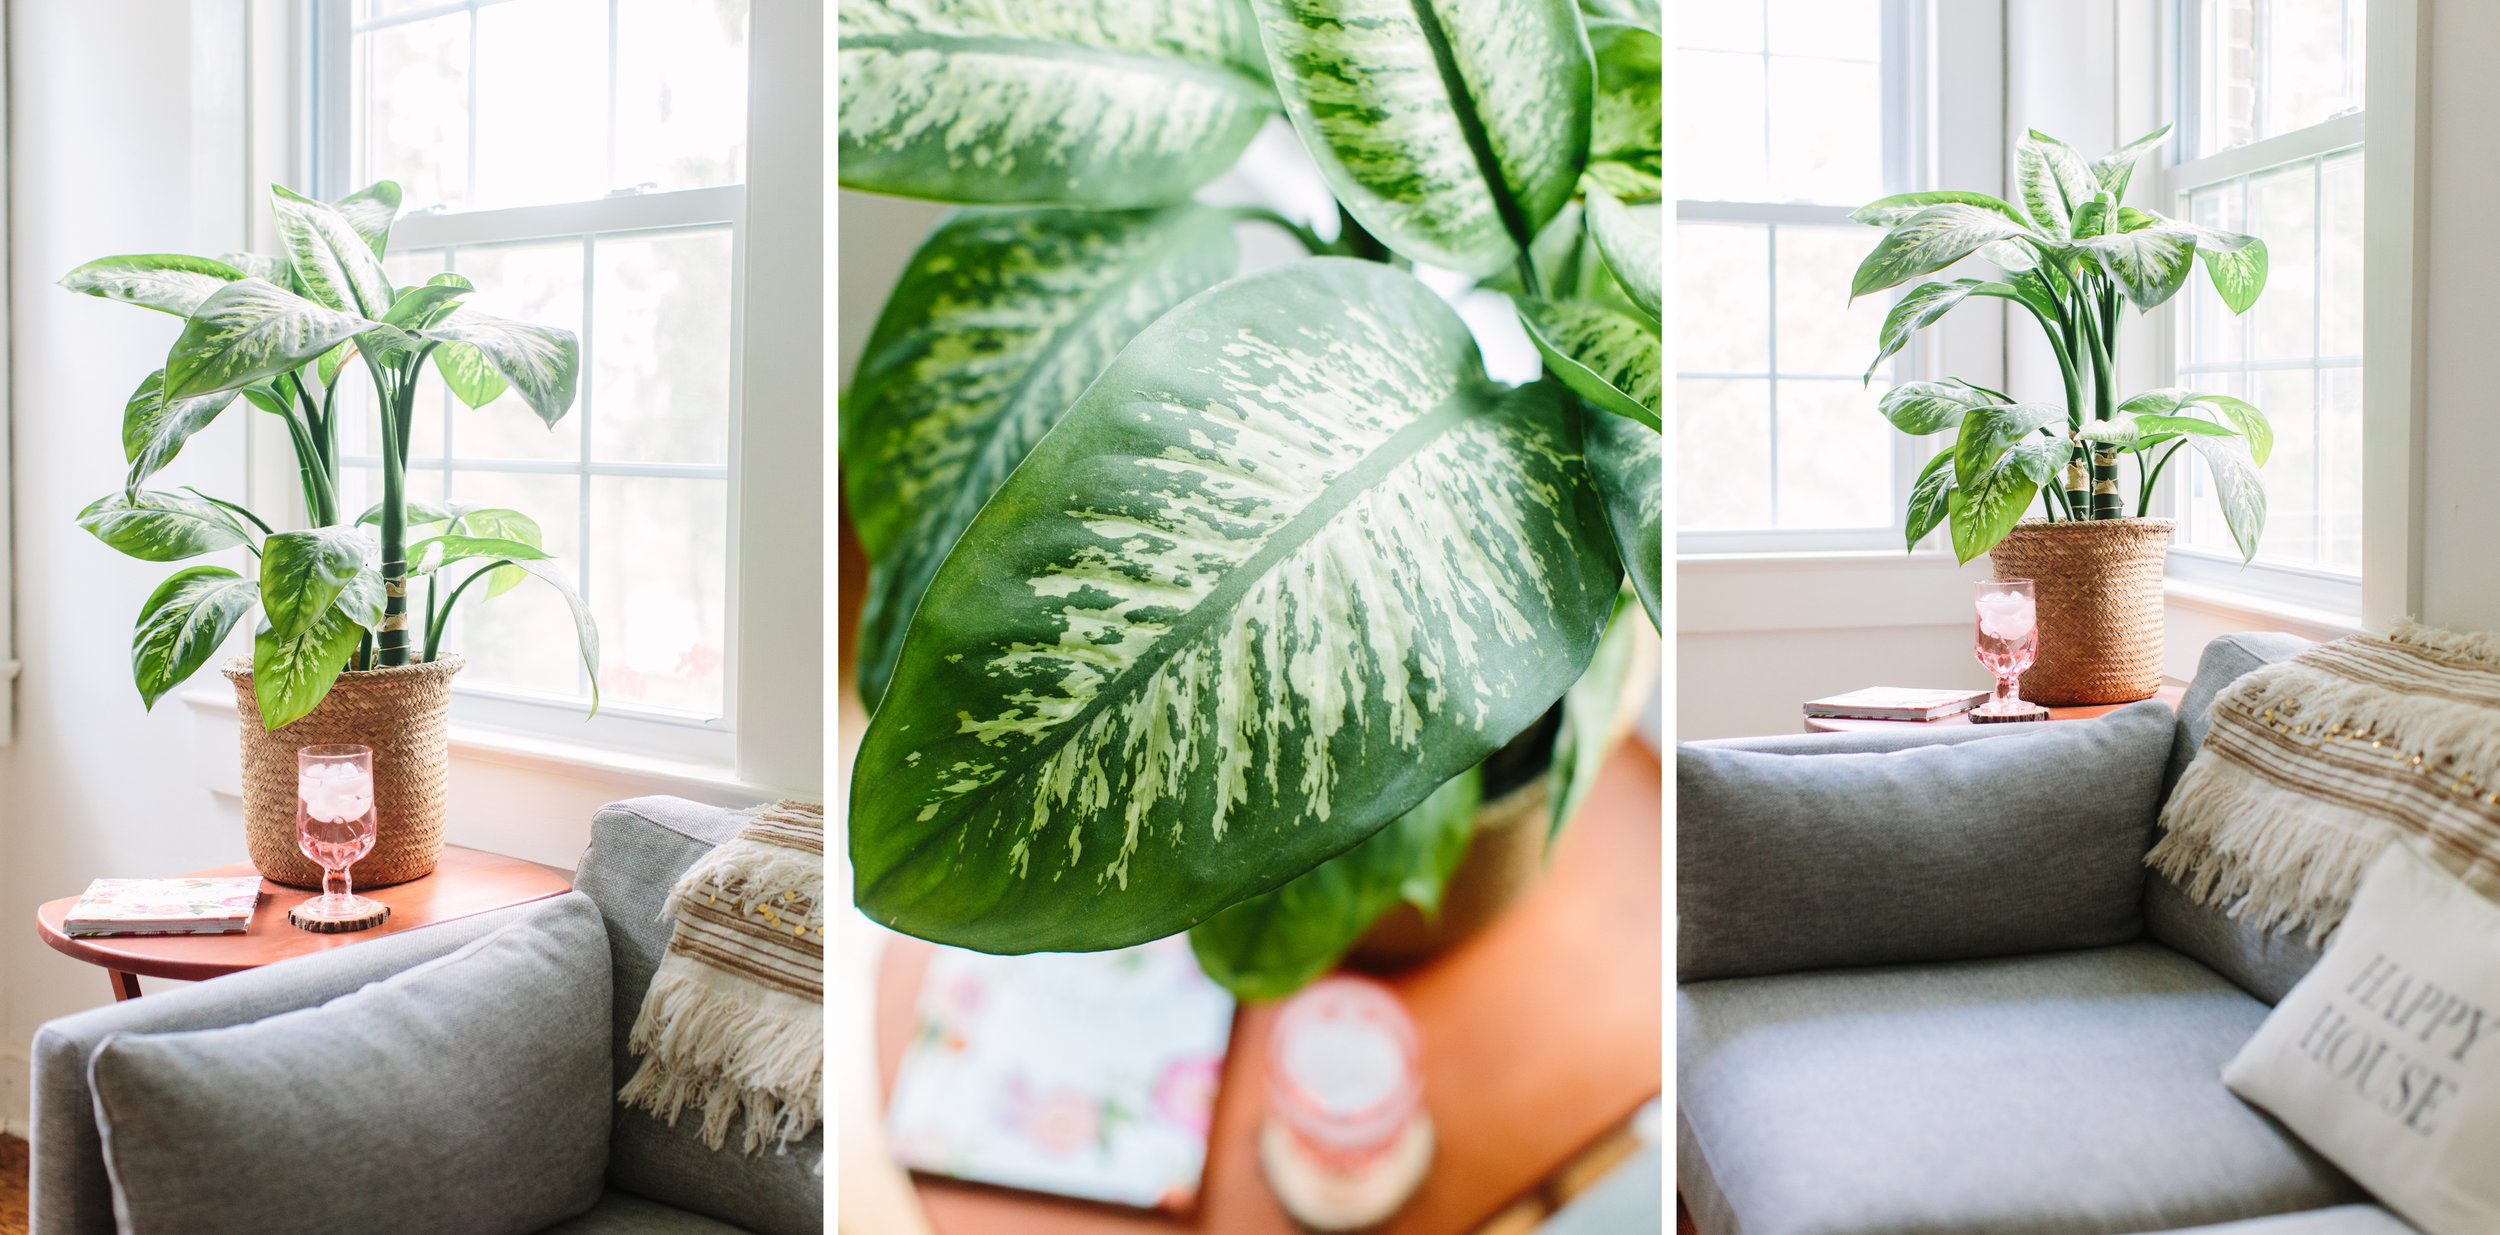 Low Maintenance House Plantsbusiness, self, personal, photographer, tips, lifestyle, indoor, ideas, creative, at home, light and airy, natural light, photoshoot, inspiration, plant mom, plants, hard to kill